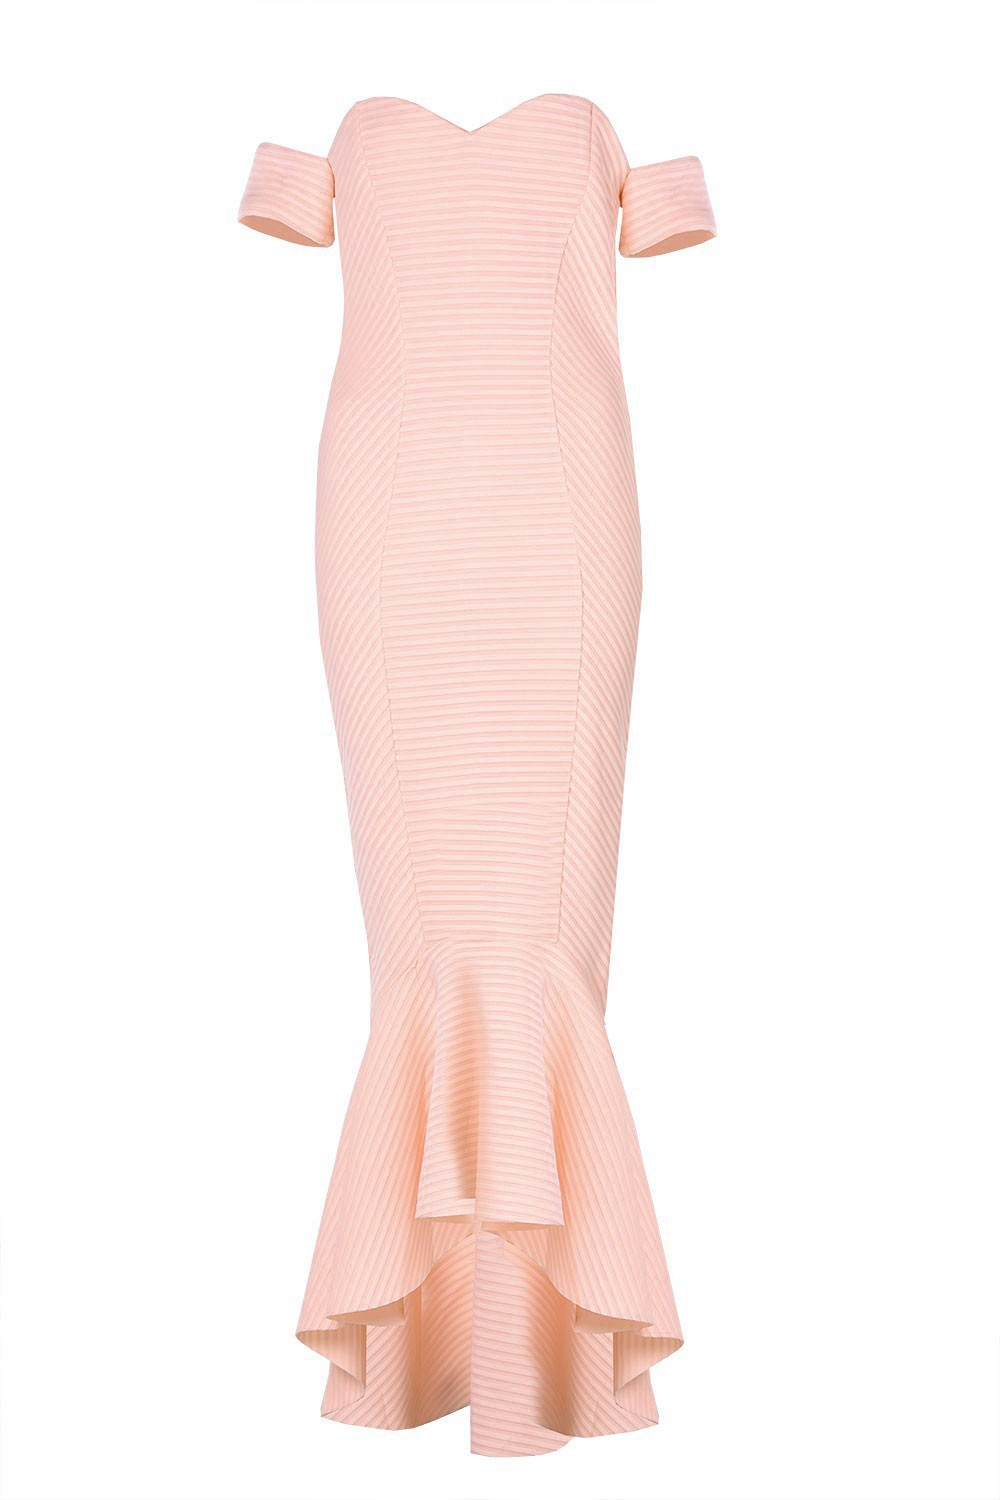 Goddiva Olive Bardot Fishtail Maxi Dress in Peach | iCLOTHING